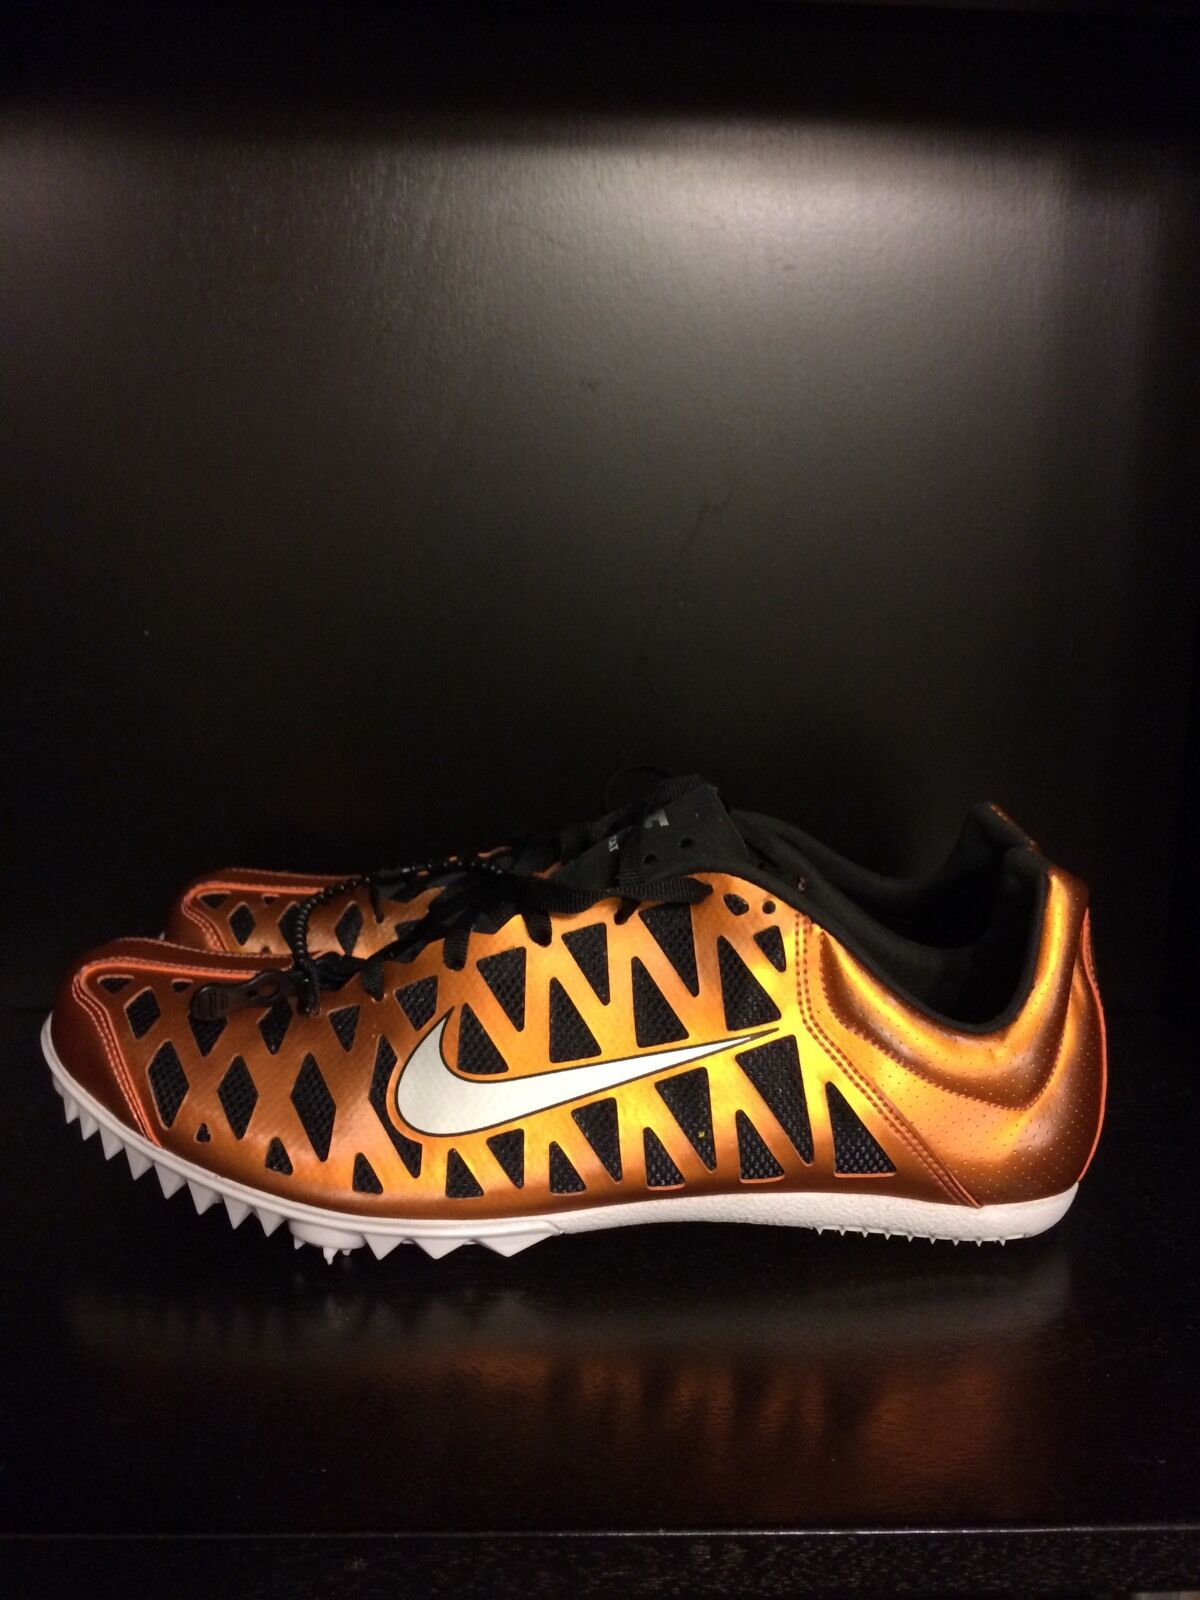 Nike Zoom Maxcat 3 Track Running Spikes Men's 8 Mins 9.5 NNB 414531 001 Price reduction